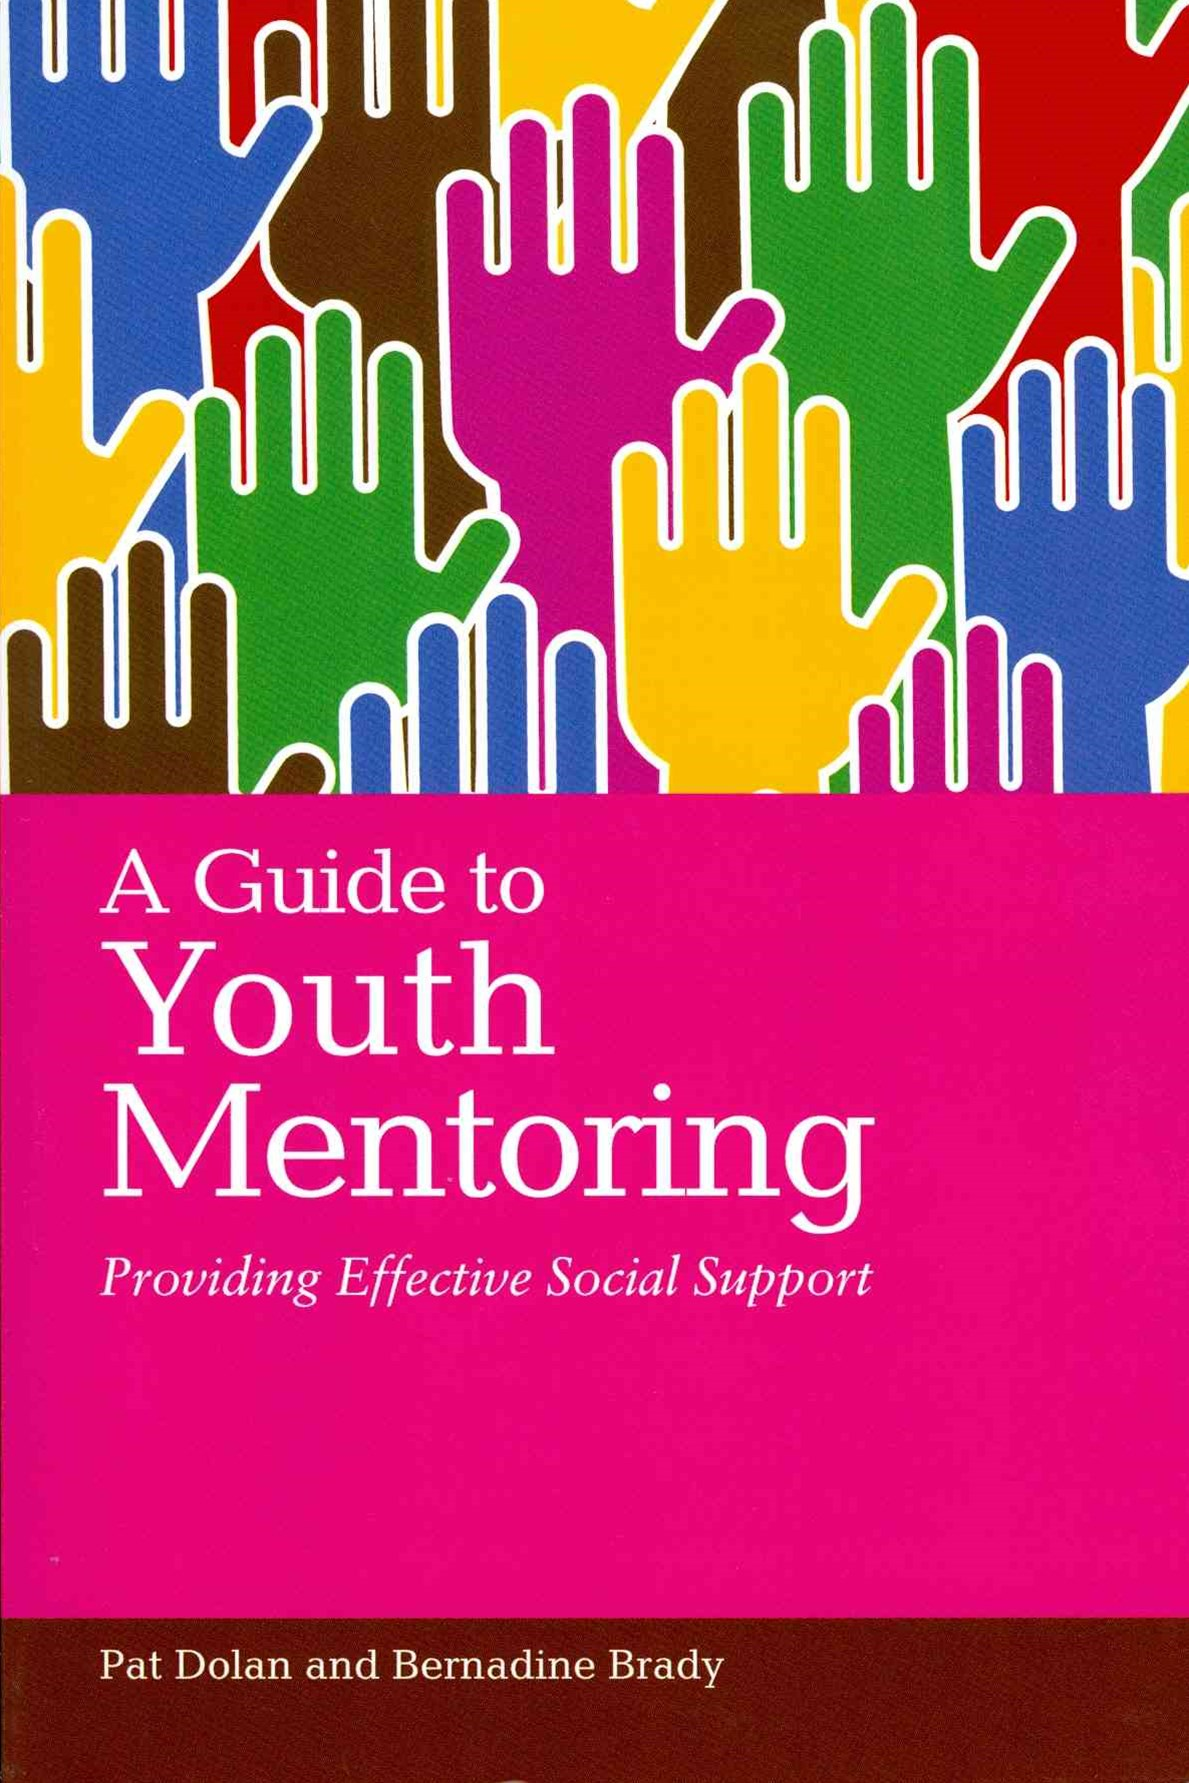 Guide to Youth Mentoring